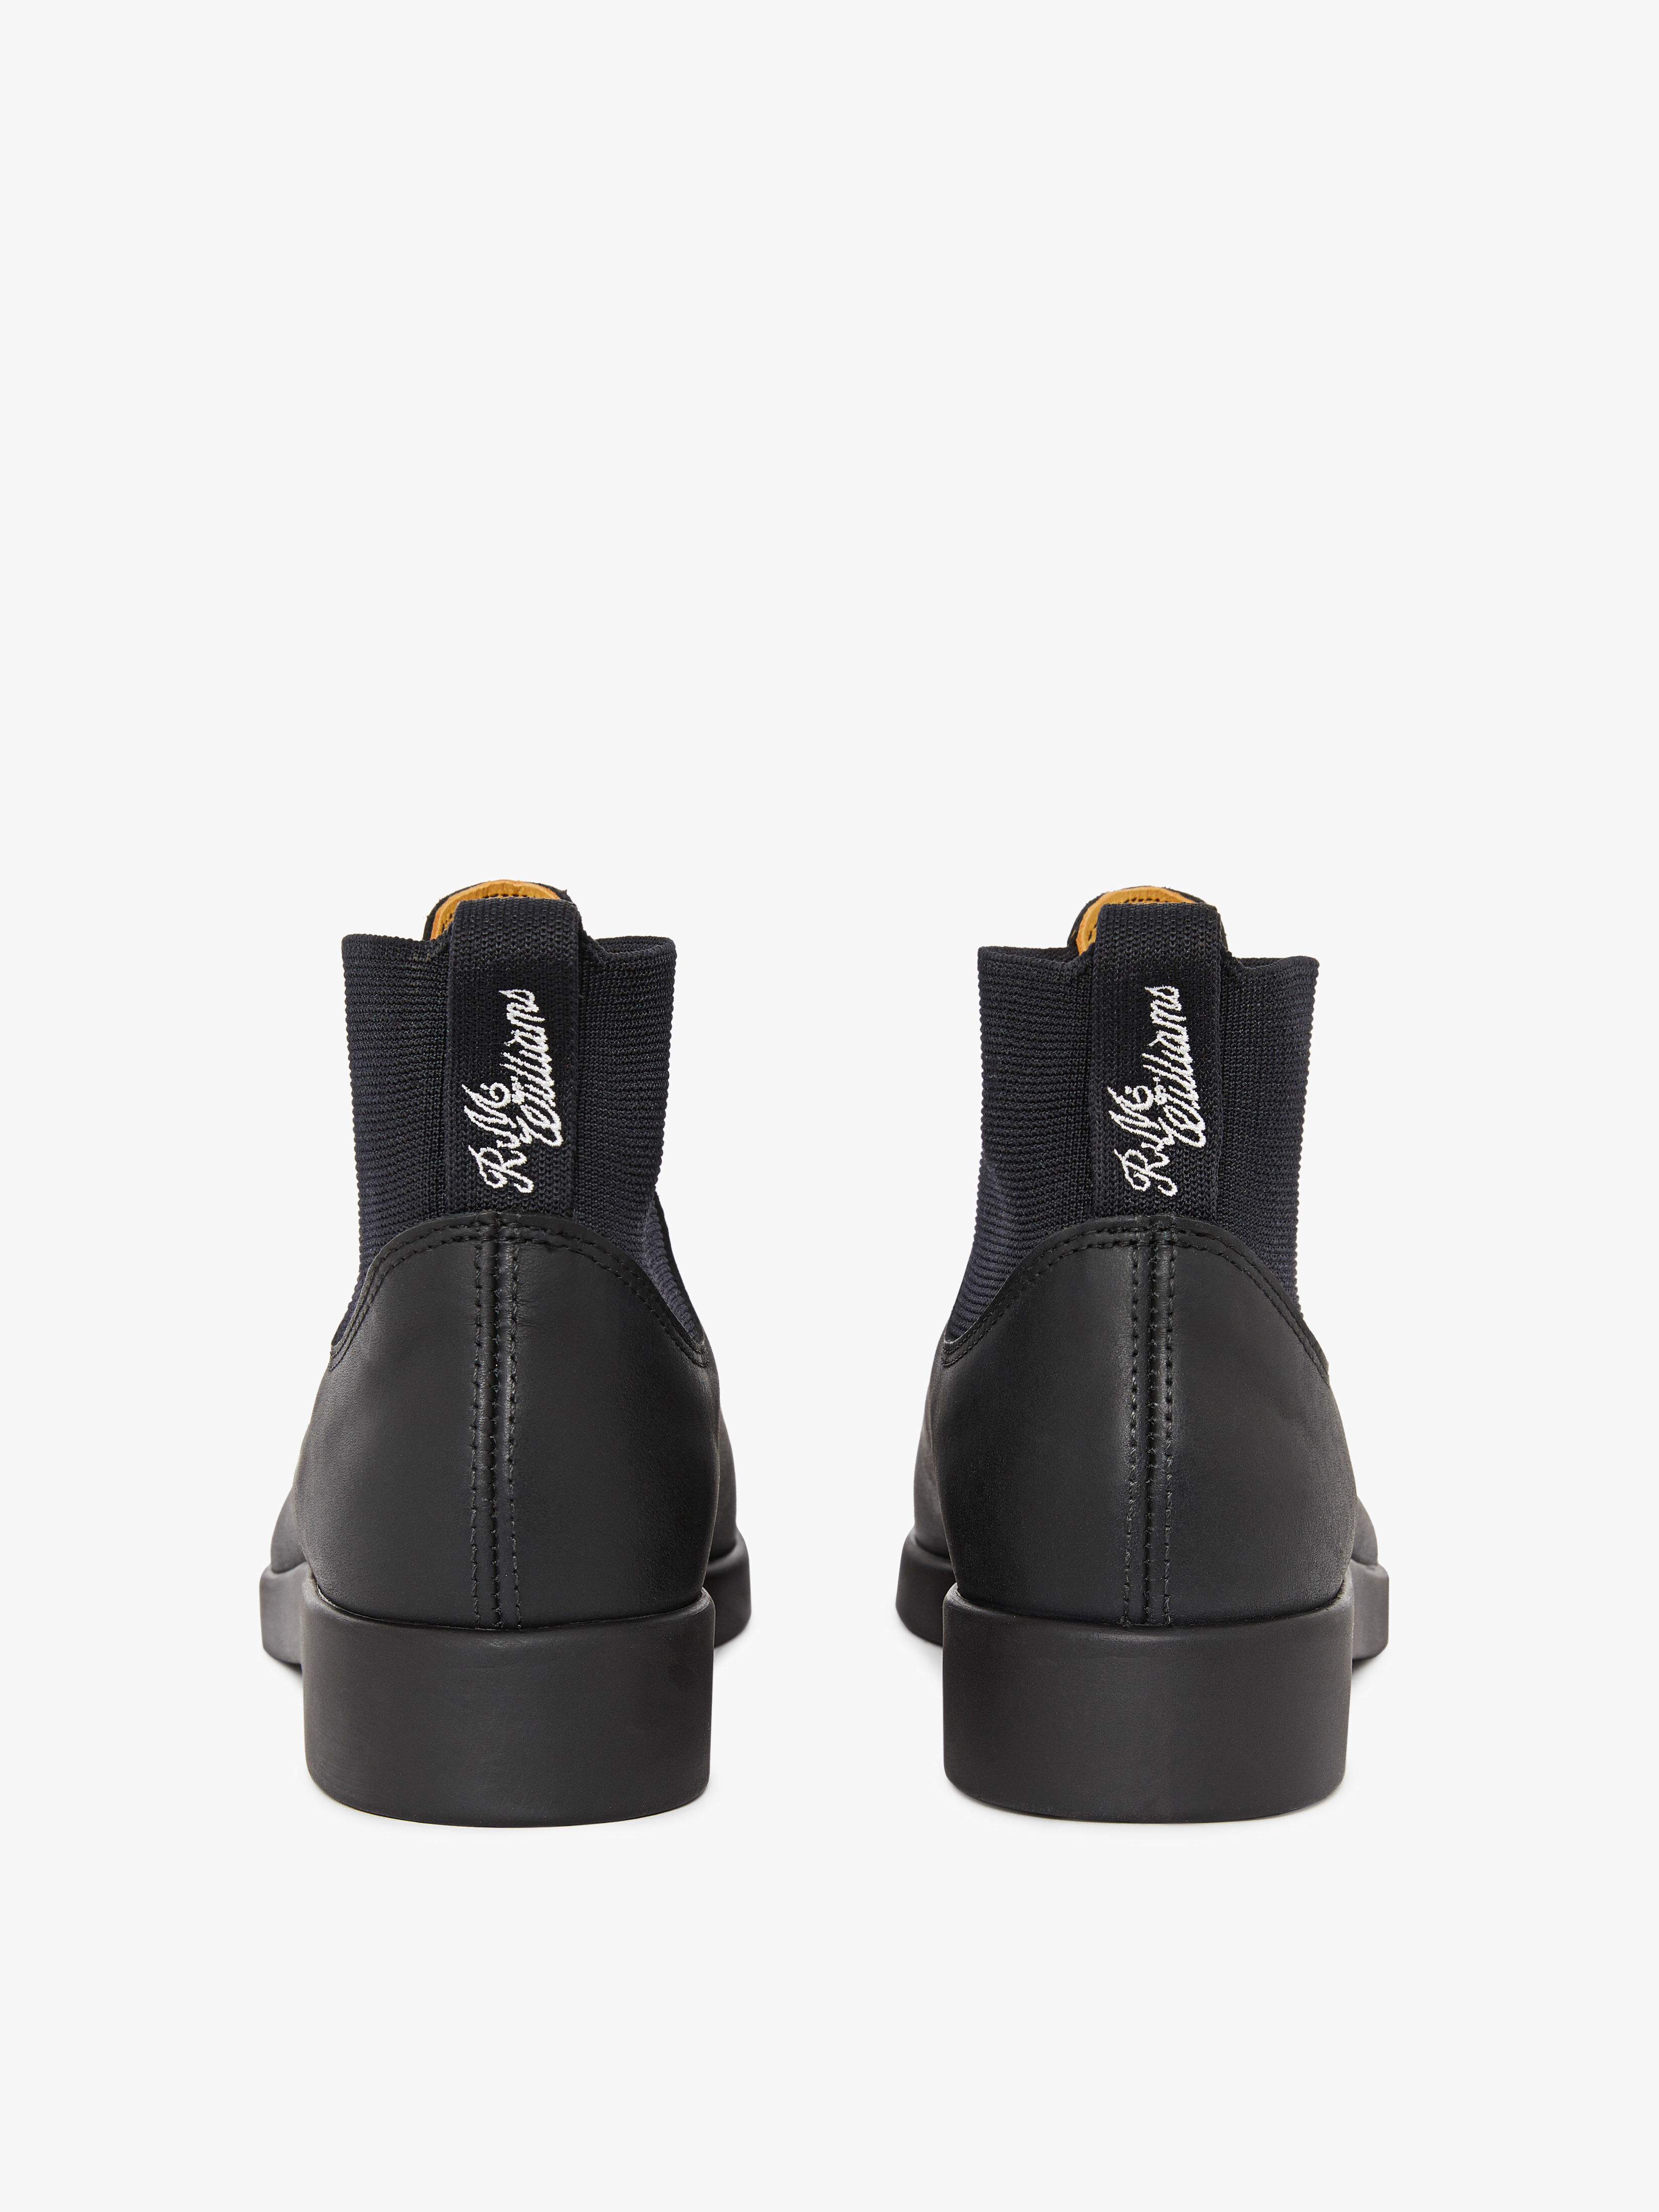 Yard Boot 365 Suede Leather Boots